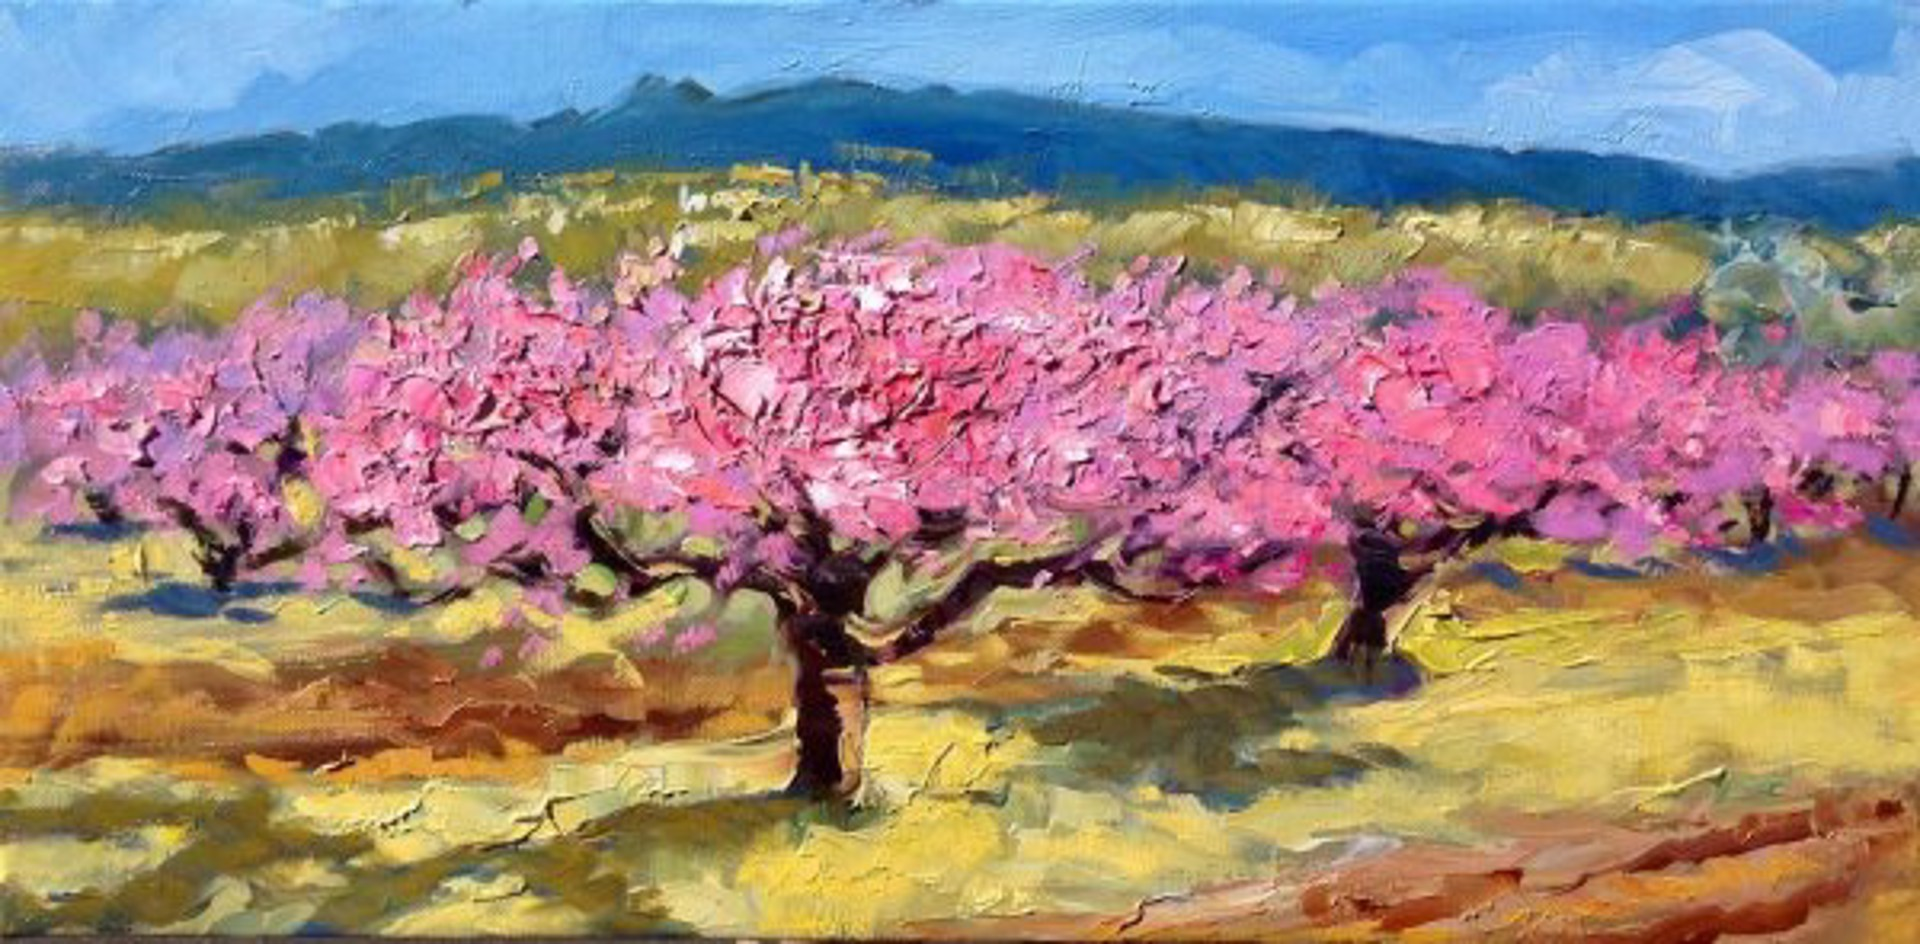 Apricot Blossoms In The Field by Maria Bertrán